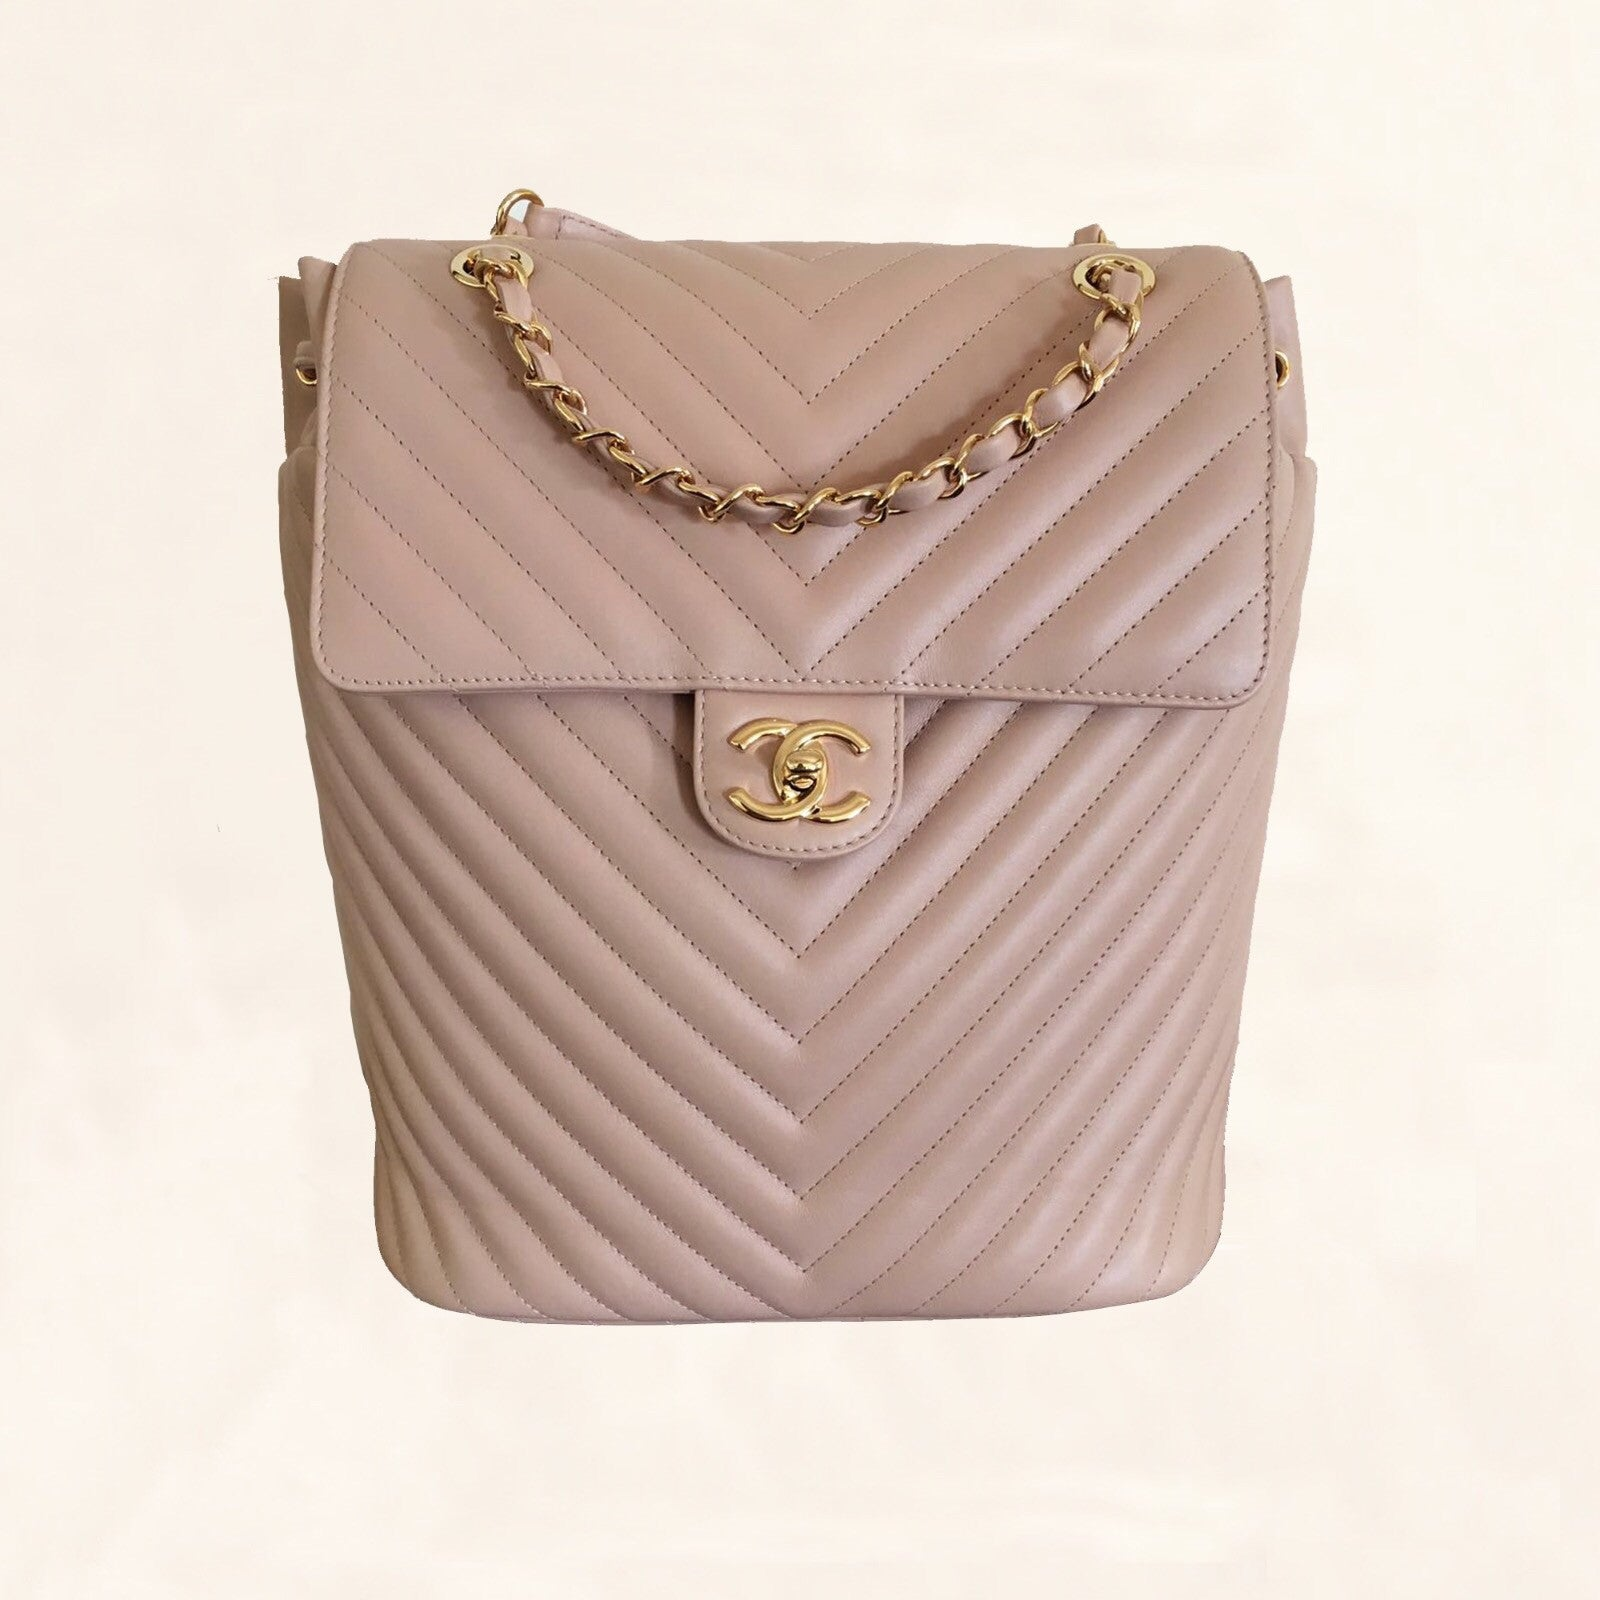 7629bc2c2359 Chanel | Chevron Urban Spirit Backpack | Large - The-Collectory